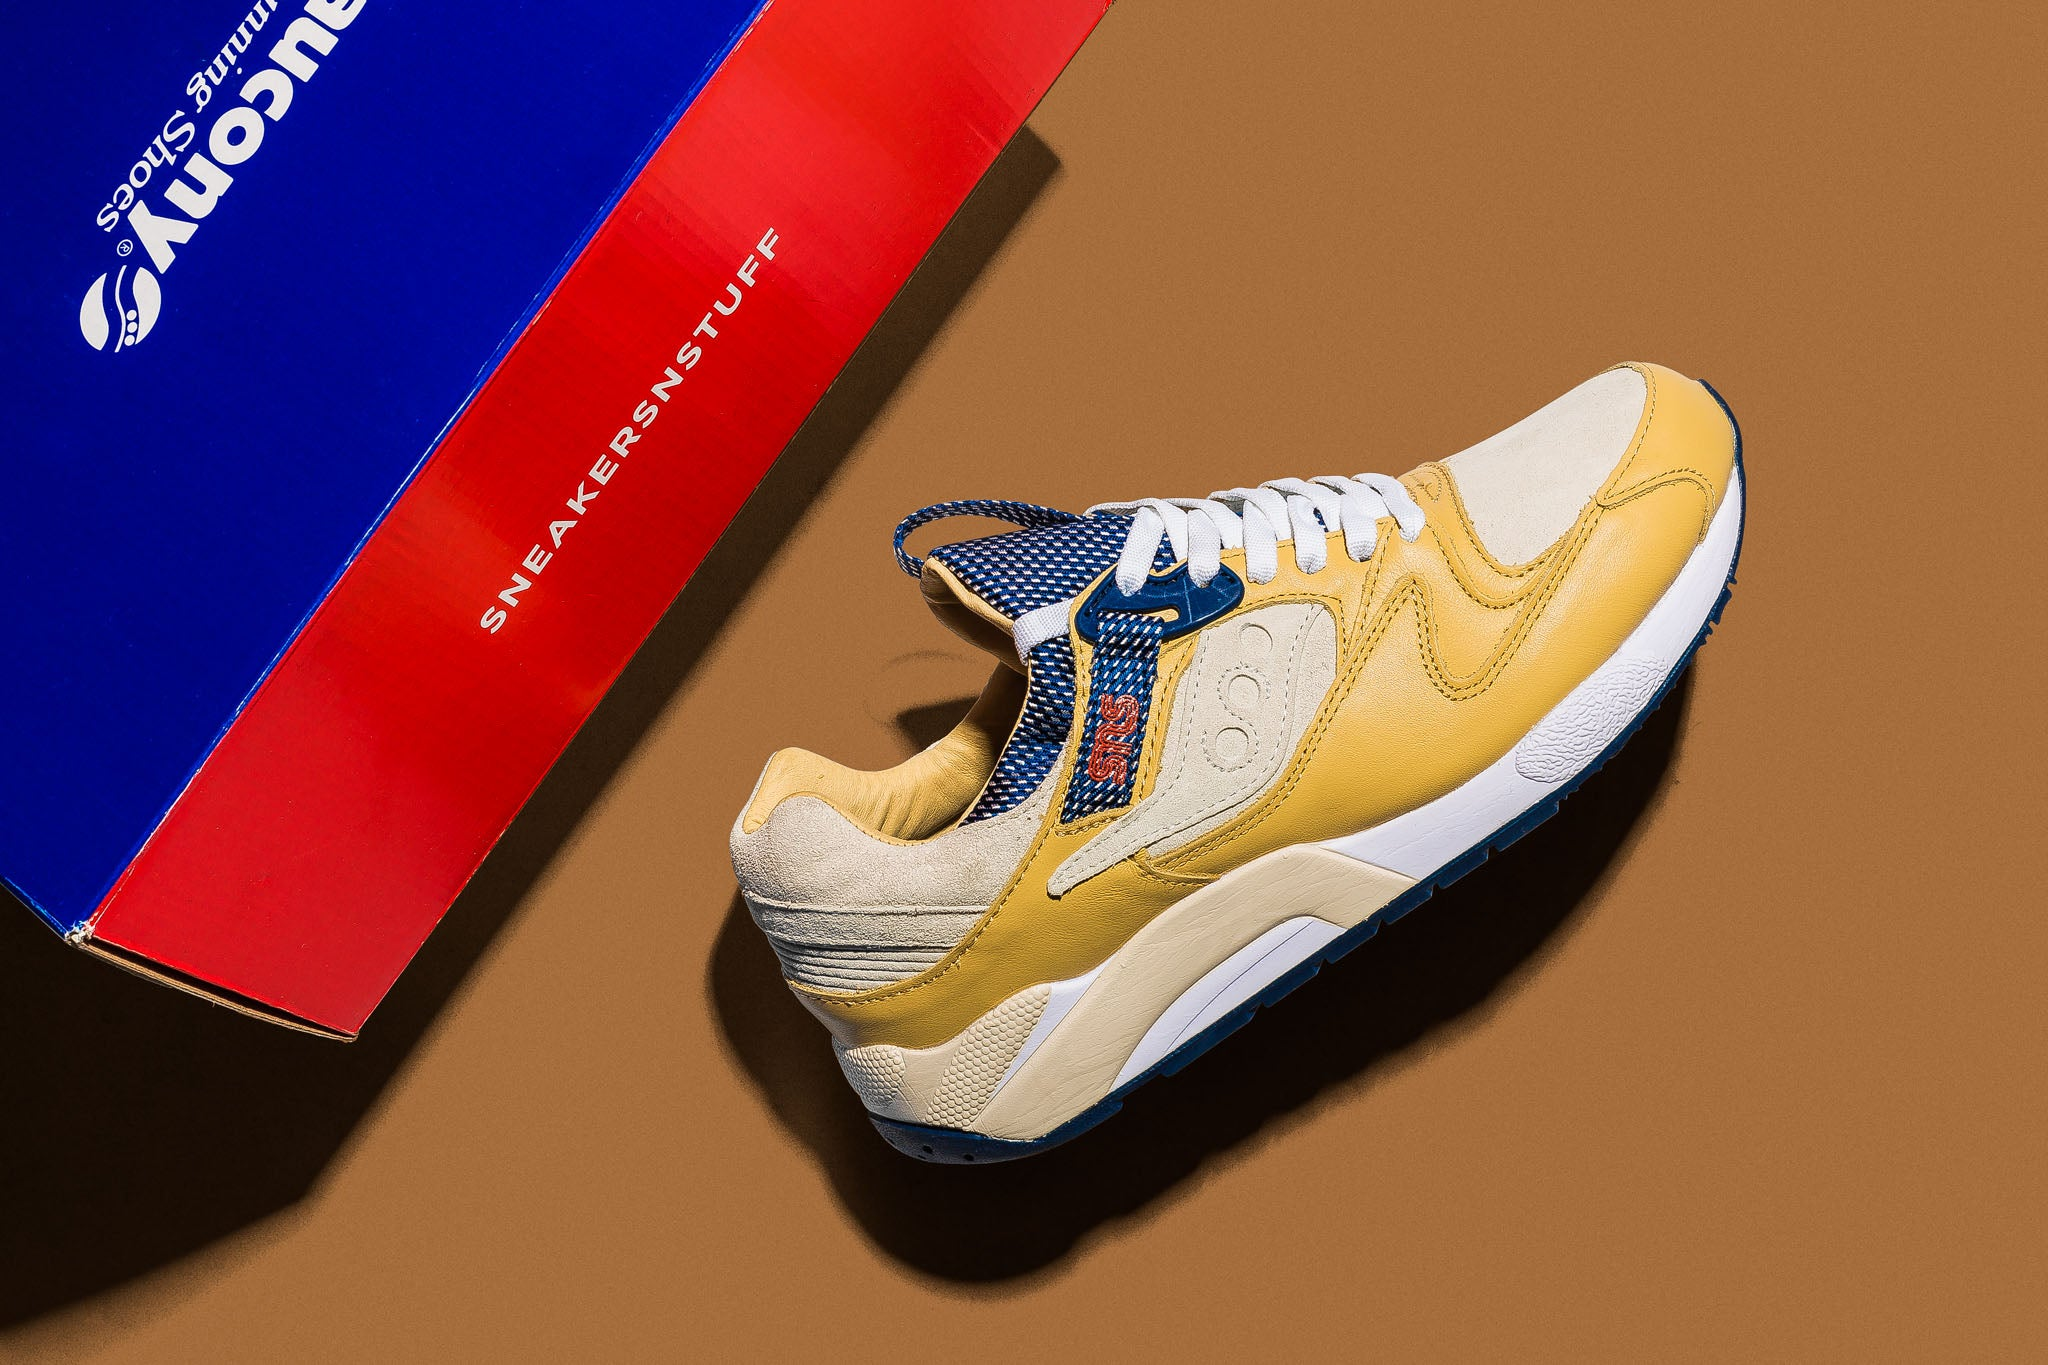 "63ac818bba21 ... up to bring the look and feel of a comfortable business class flight  across the Atlantic to your feet with the Saucony Grid 9000 ""Business  Class""."